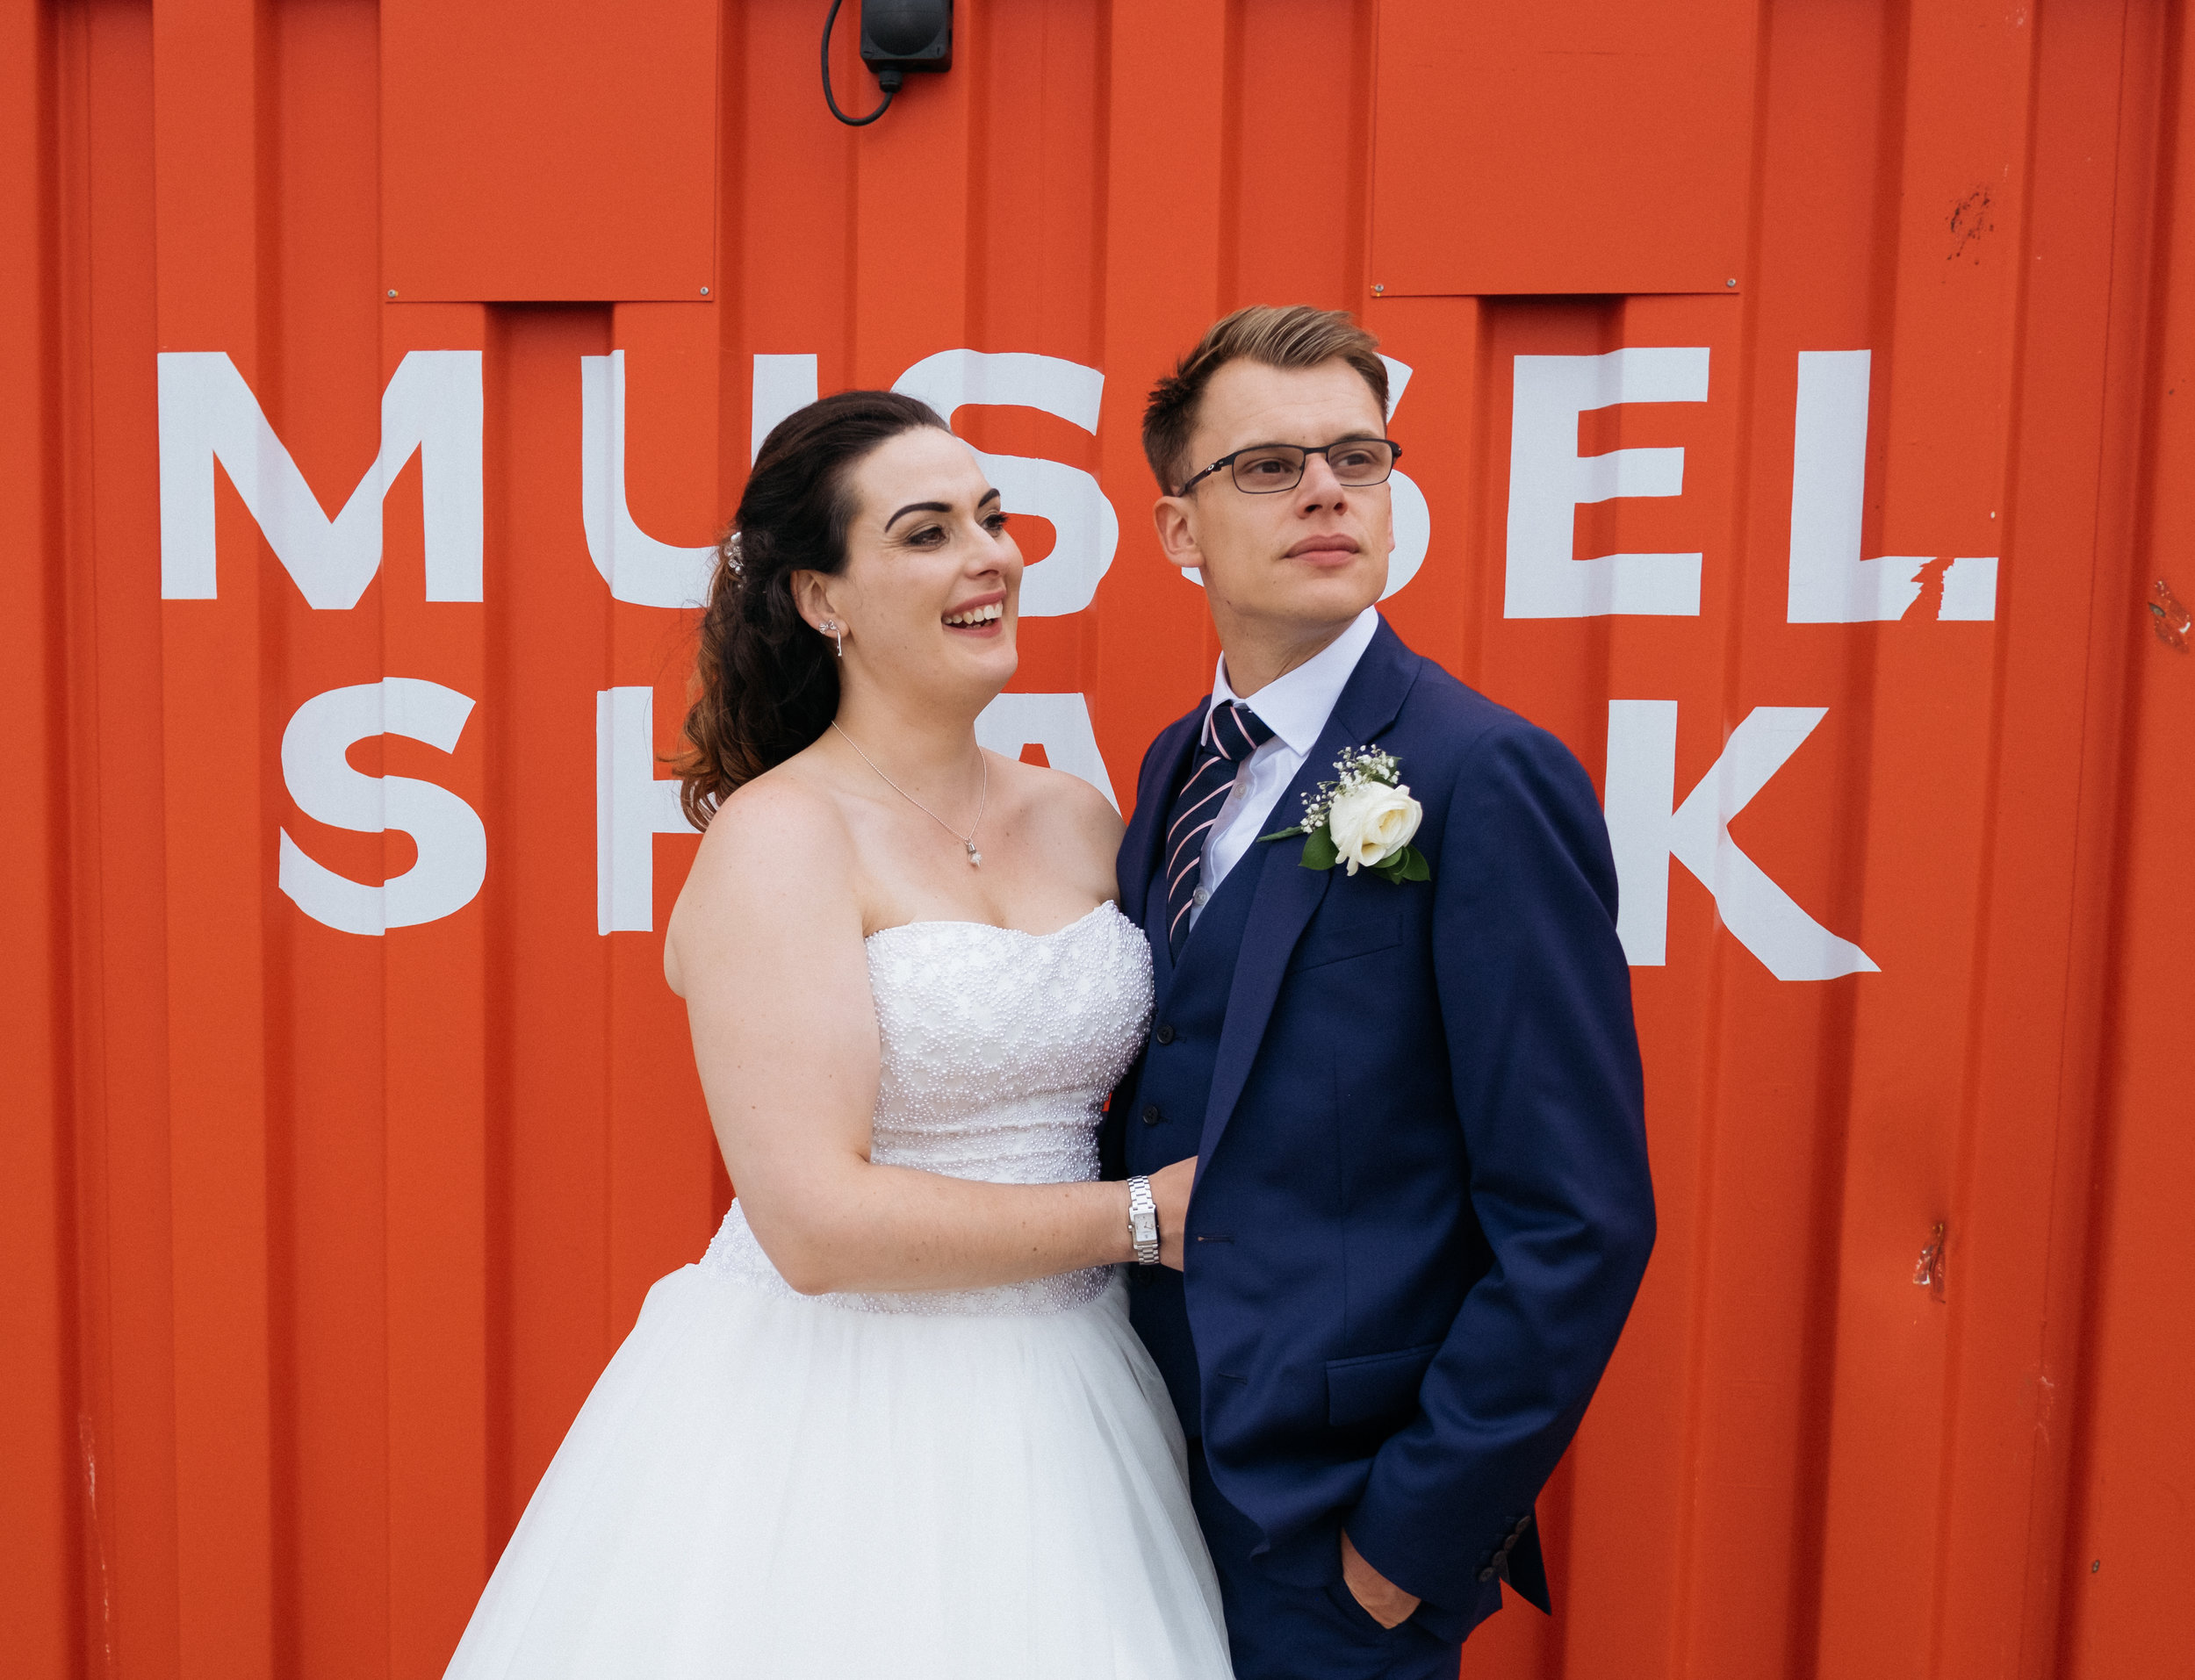 Bride and groom at East Quay wedding venue